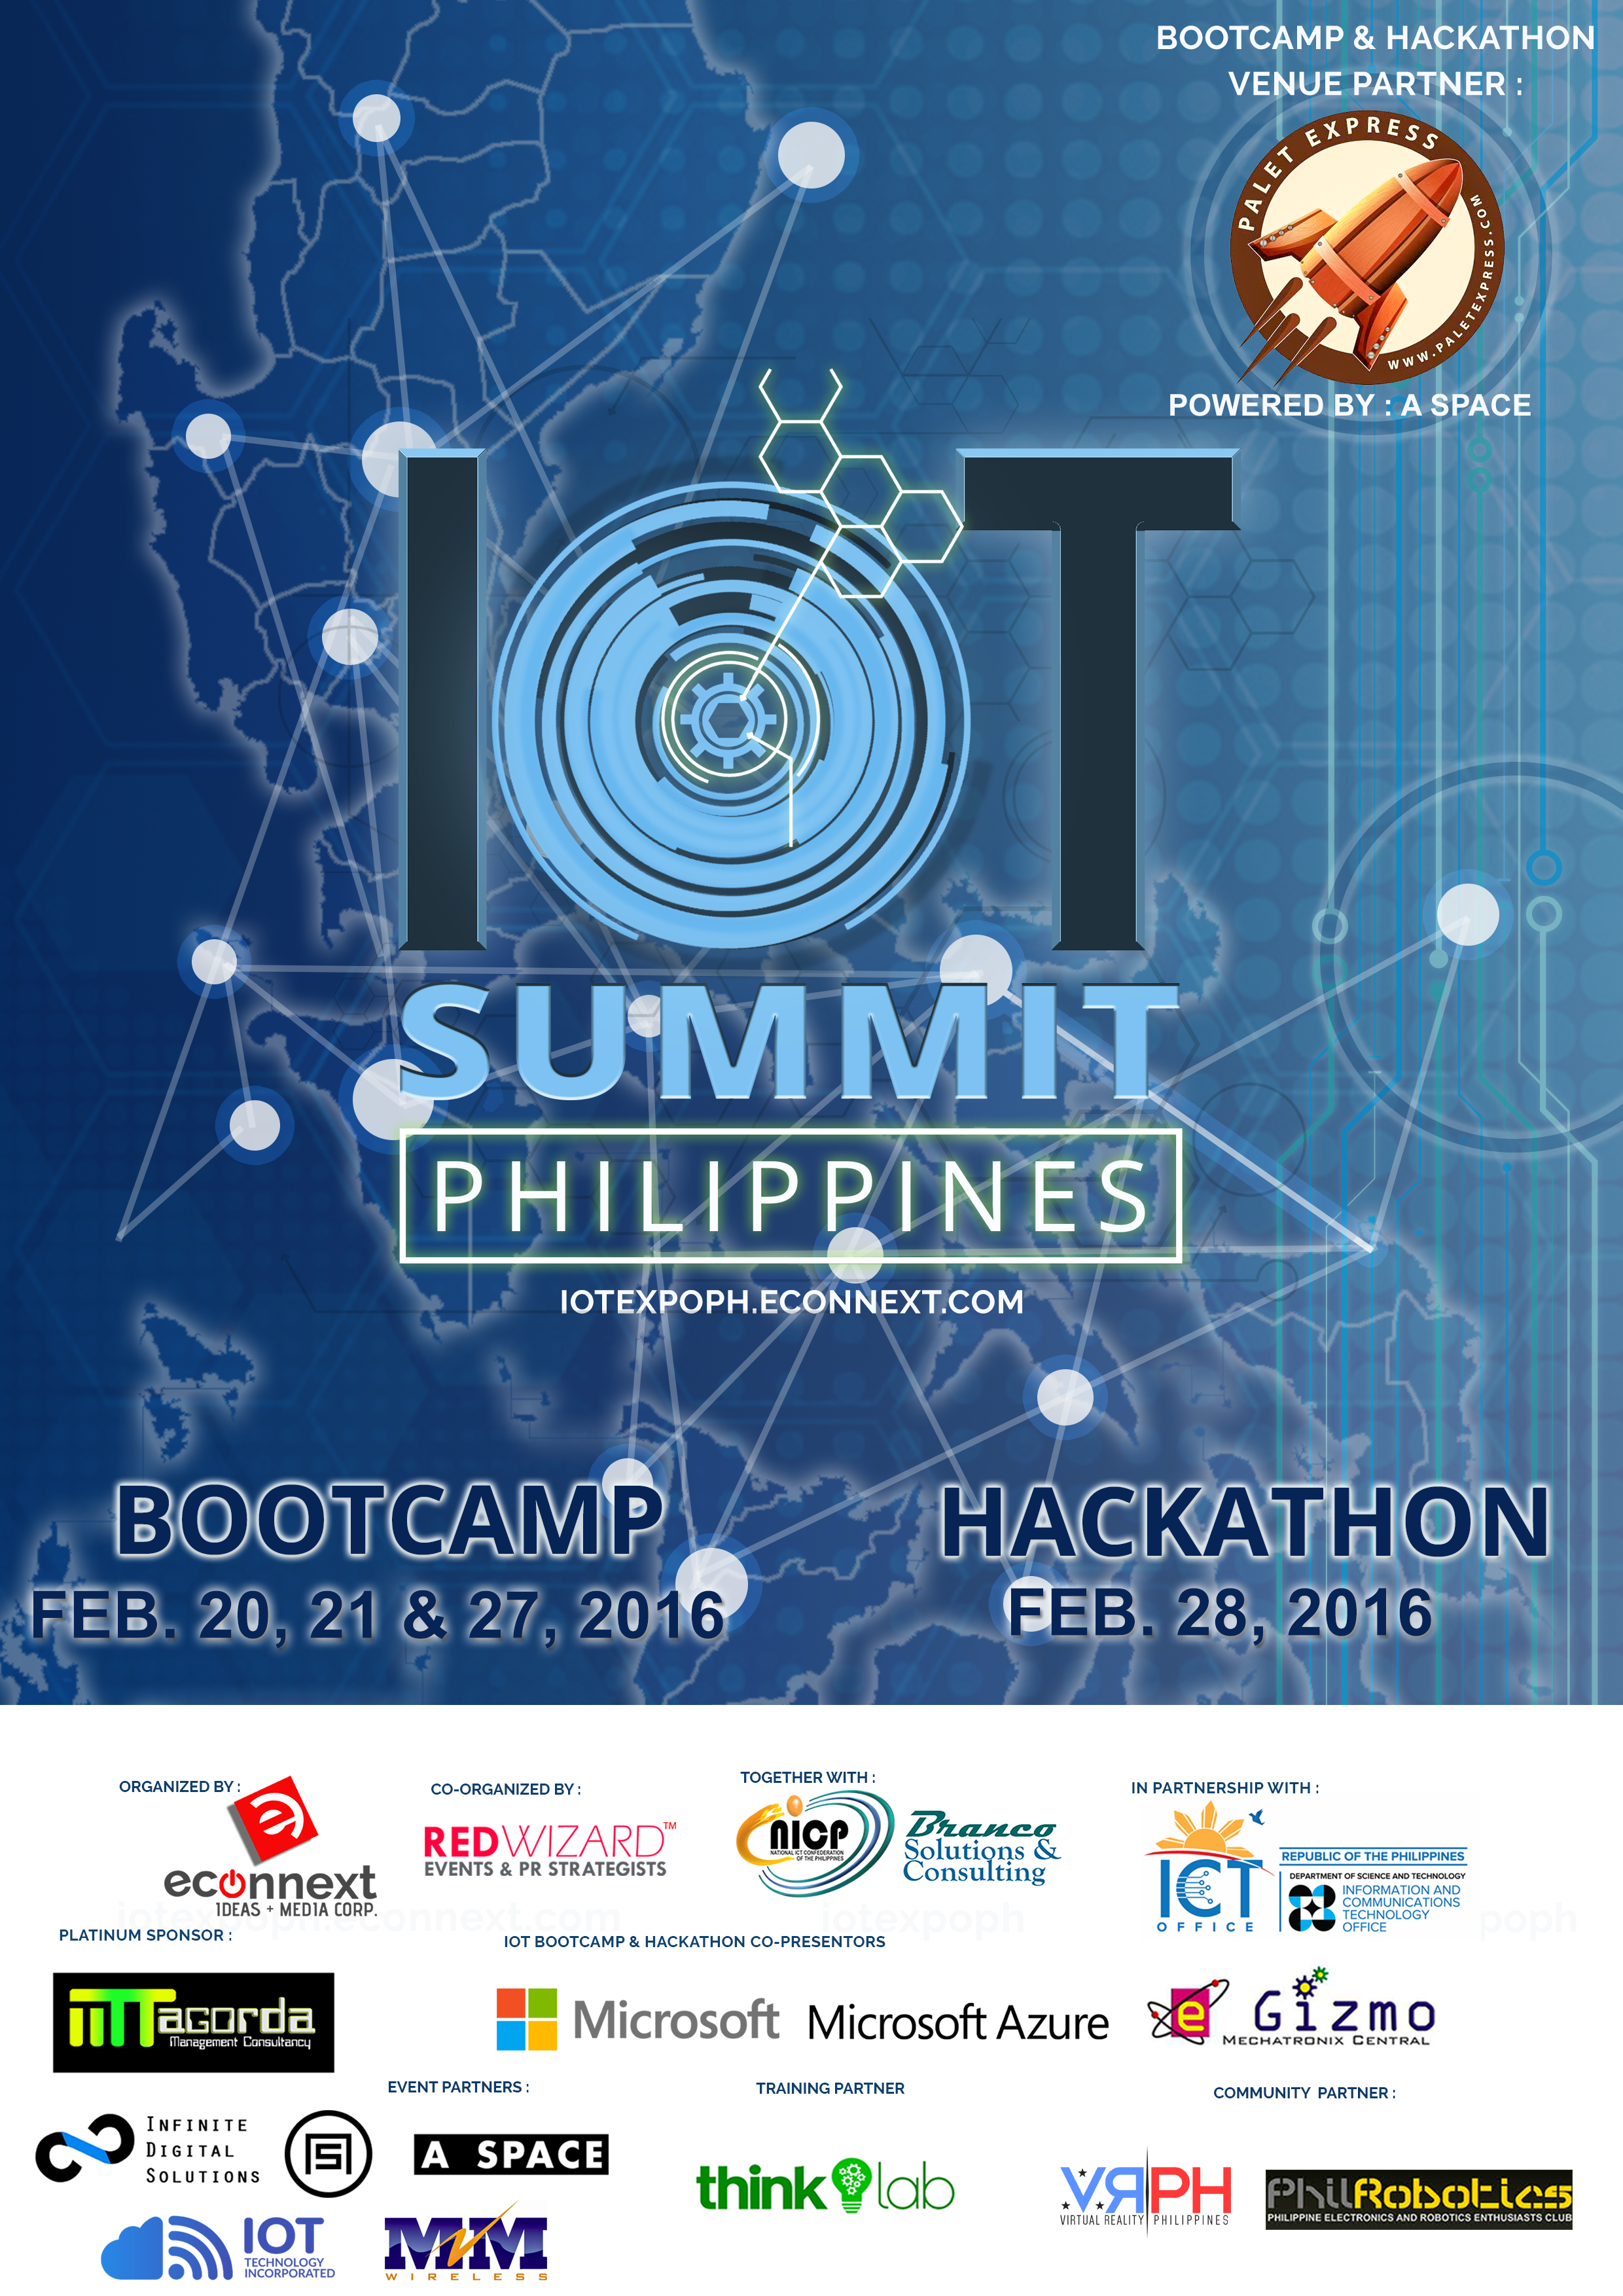 IoT Summit Philippines Bootcamp and Hackathon Poster